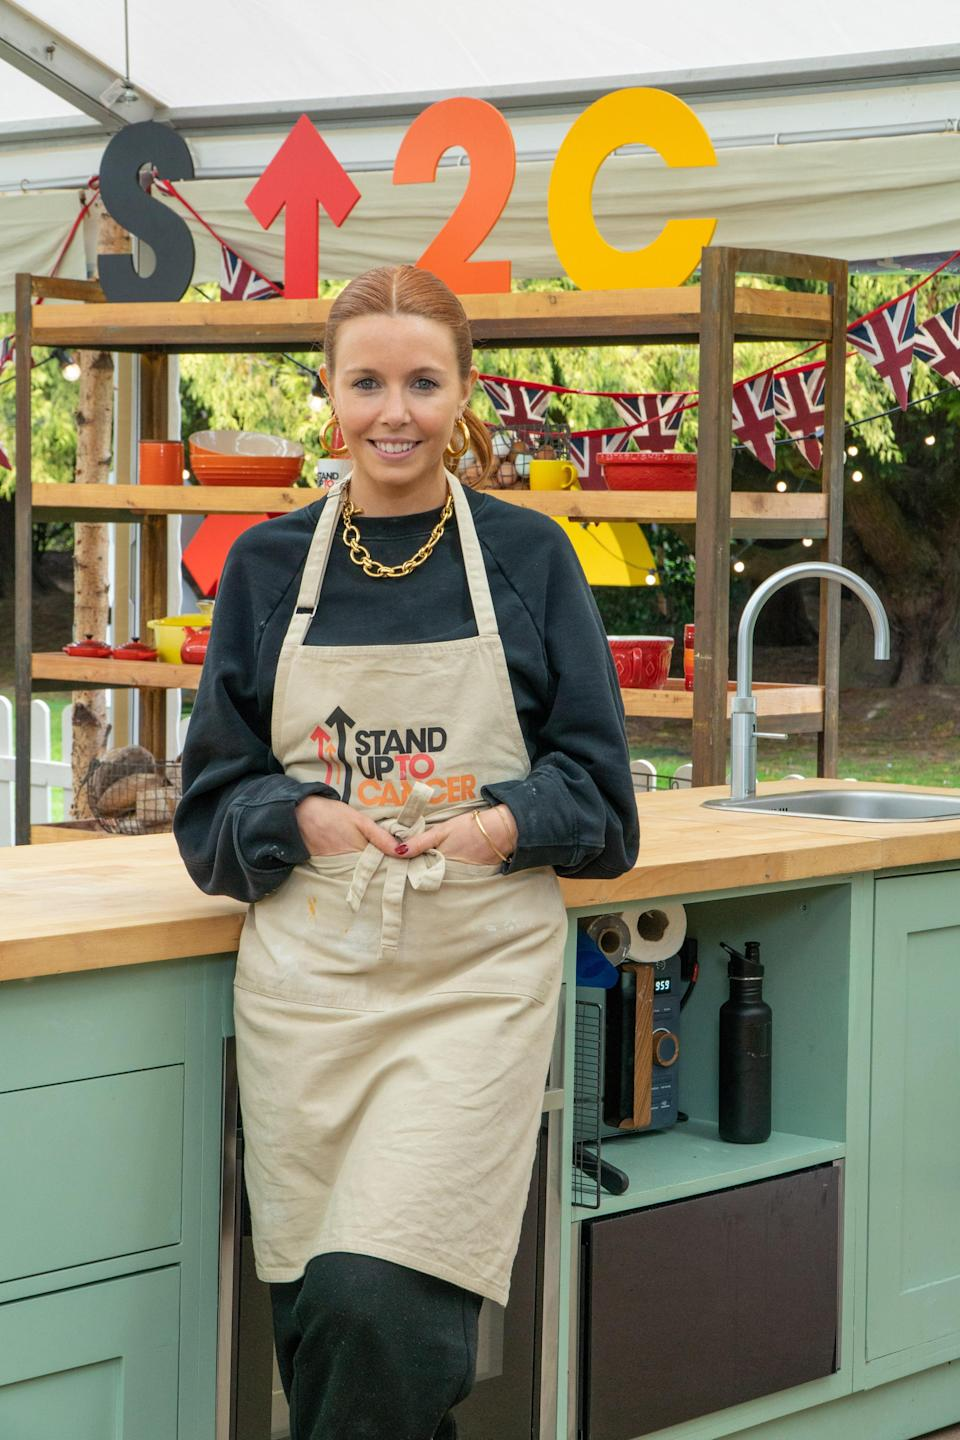 Stacey Dooley will be hoping to bake up a storm (Channel 4/Love Productions)